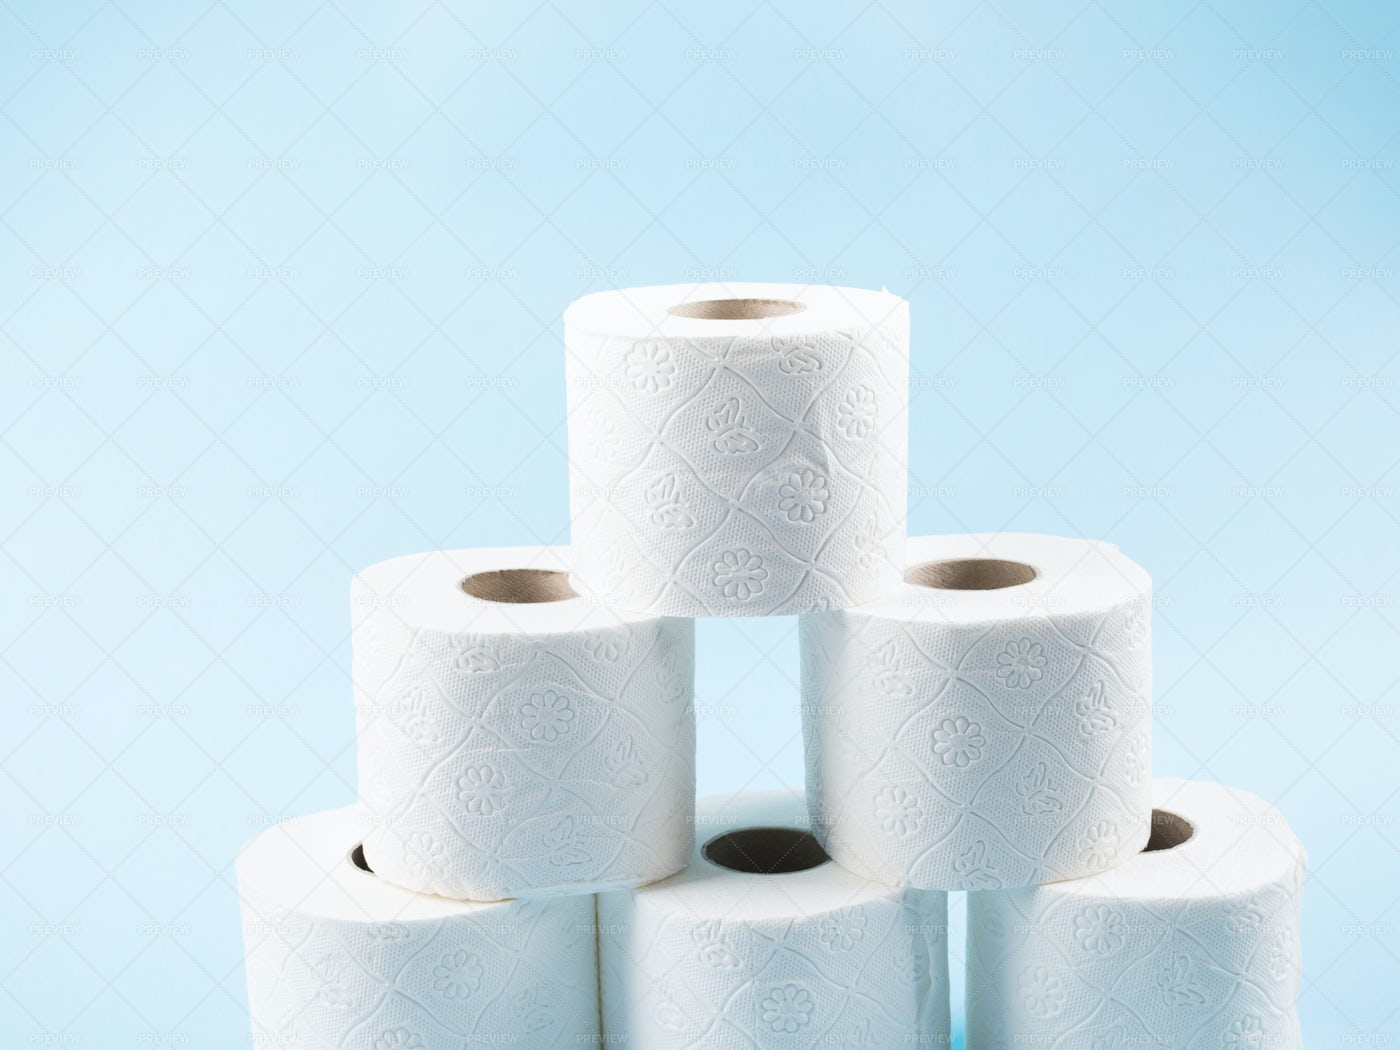 Toilet Paper Stack: Stock Photos